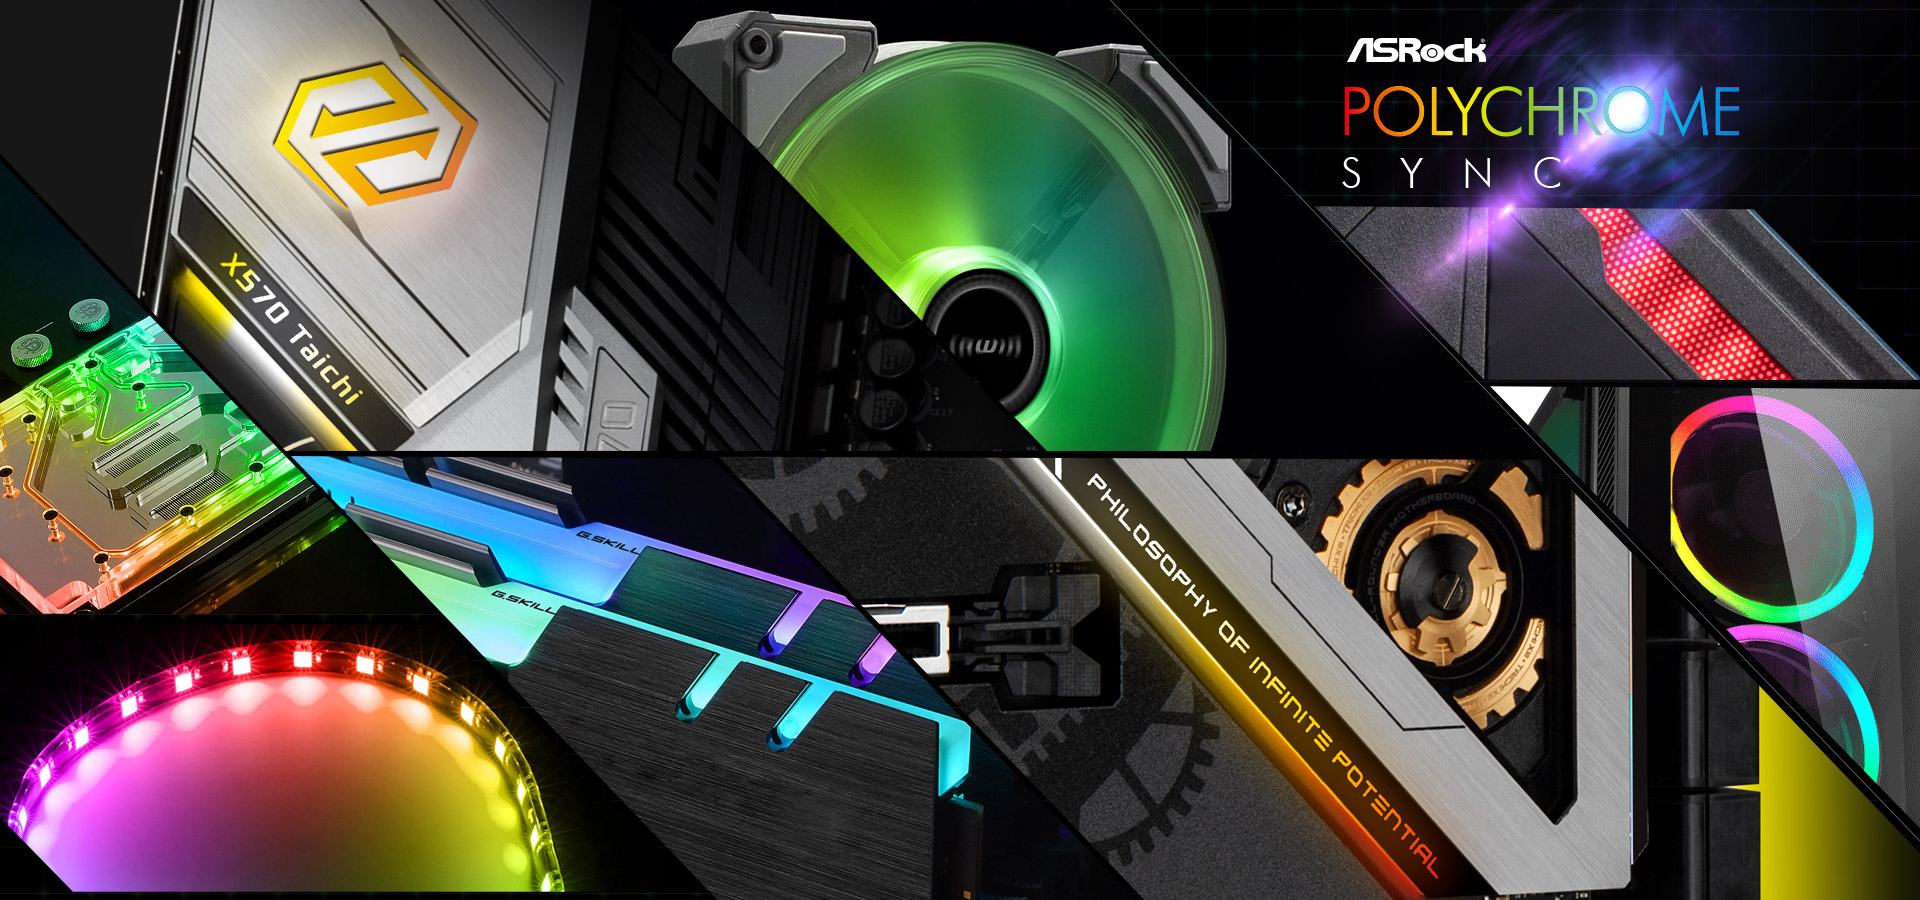 Different Closeup Shots of RGB-Lit Components and the RGB-Lit Areas on the ASRock X570 Taichi Motherboard